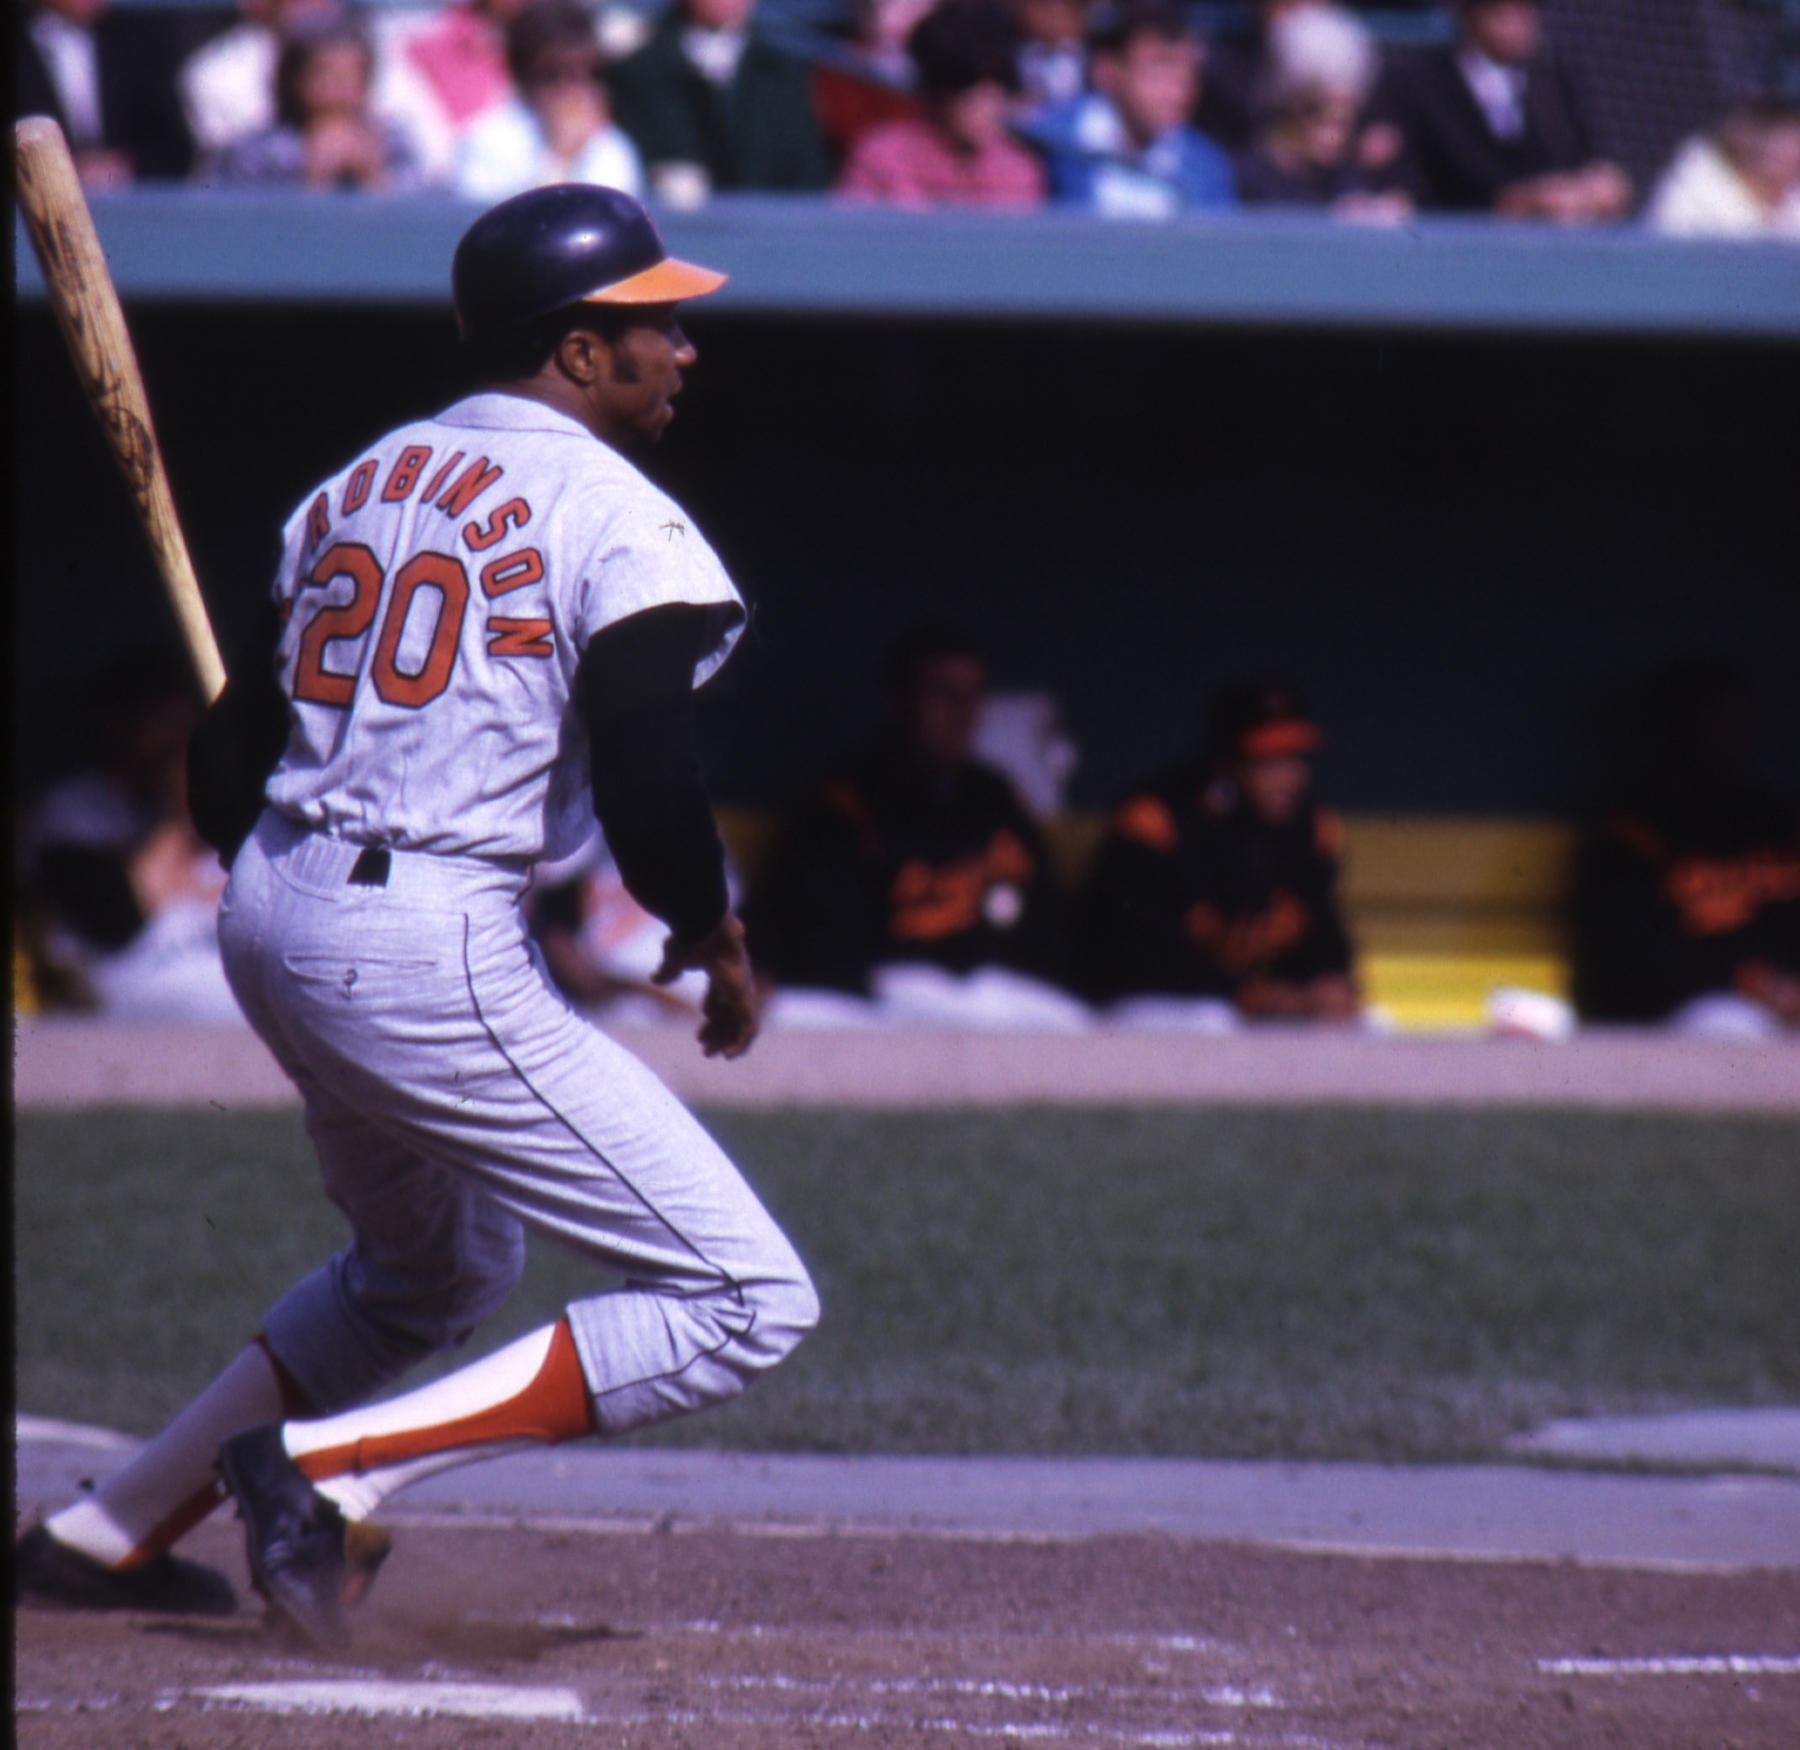 Frank Robinson led the Baltimore Orioles to two World Series titles and four American League pennants. BL-2062.93 (National Baseball Hall of Fame Library)